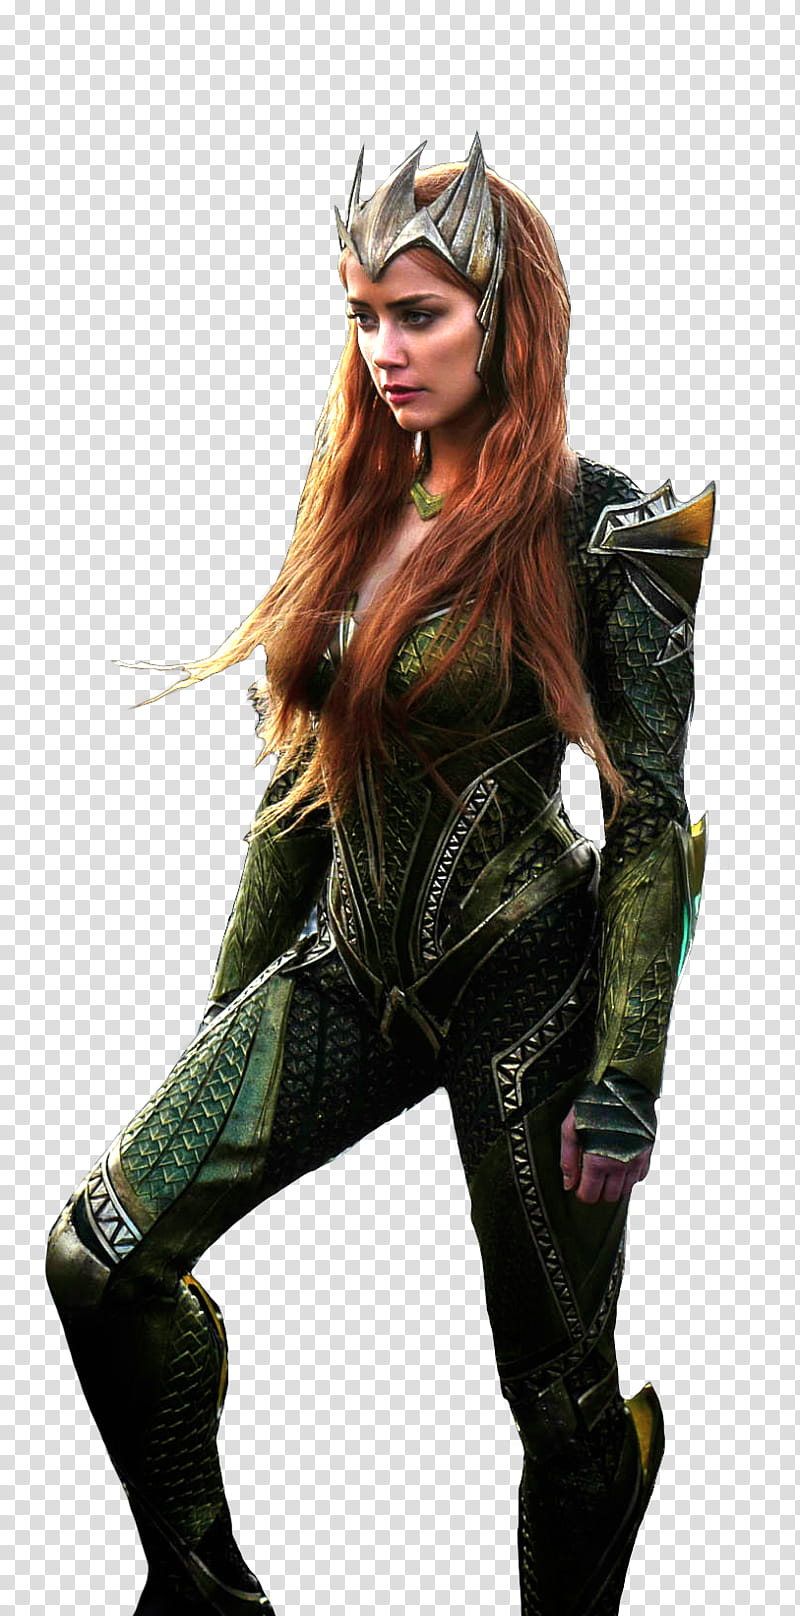 Amber Heard as Mera Justice League transparent background.